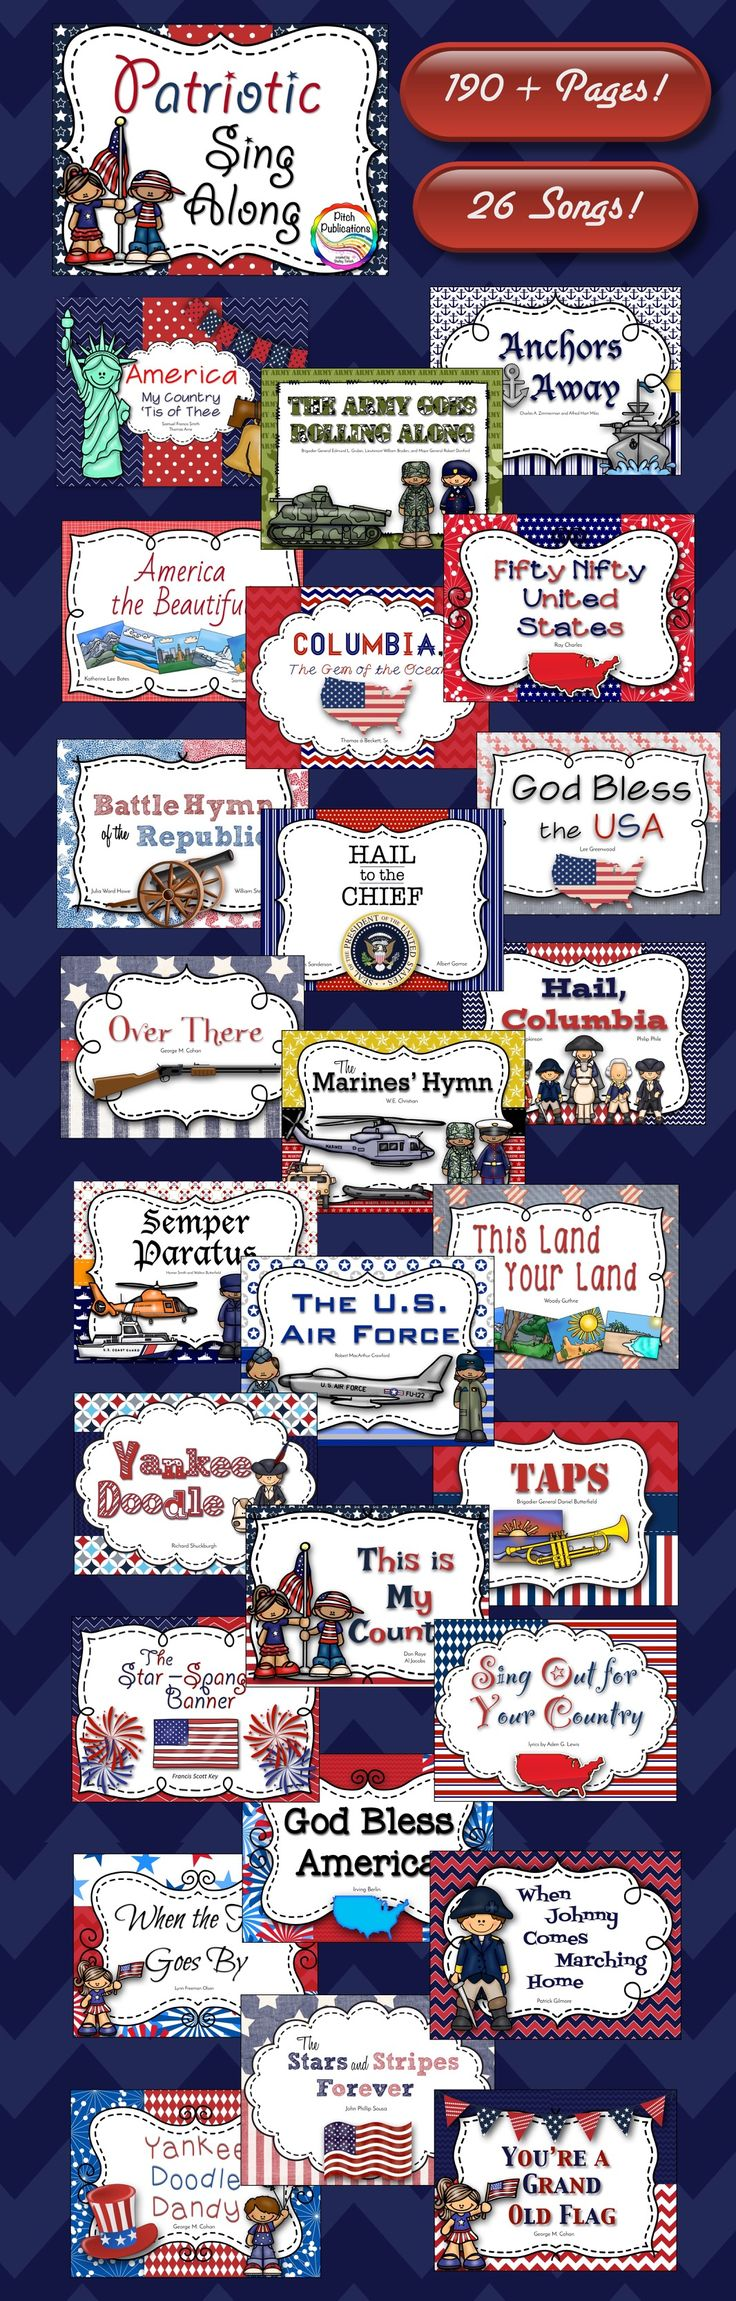 This 199 page resource will help guide your next Patriotic Sing Along! Cute graphics! Perfect for President's Day, July 4th, September 11th, or any other patriotic occasion!